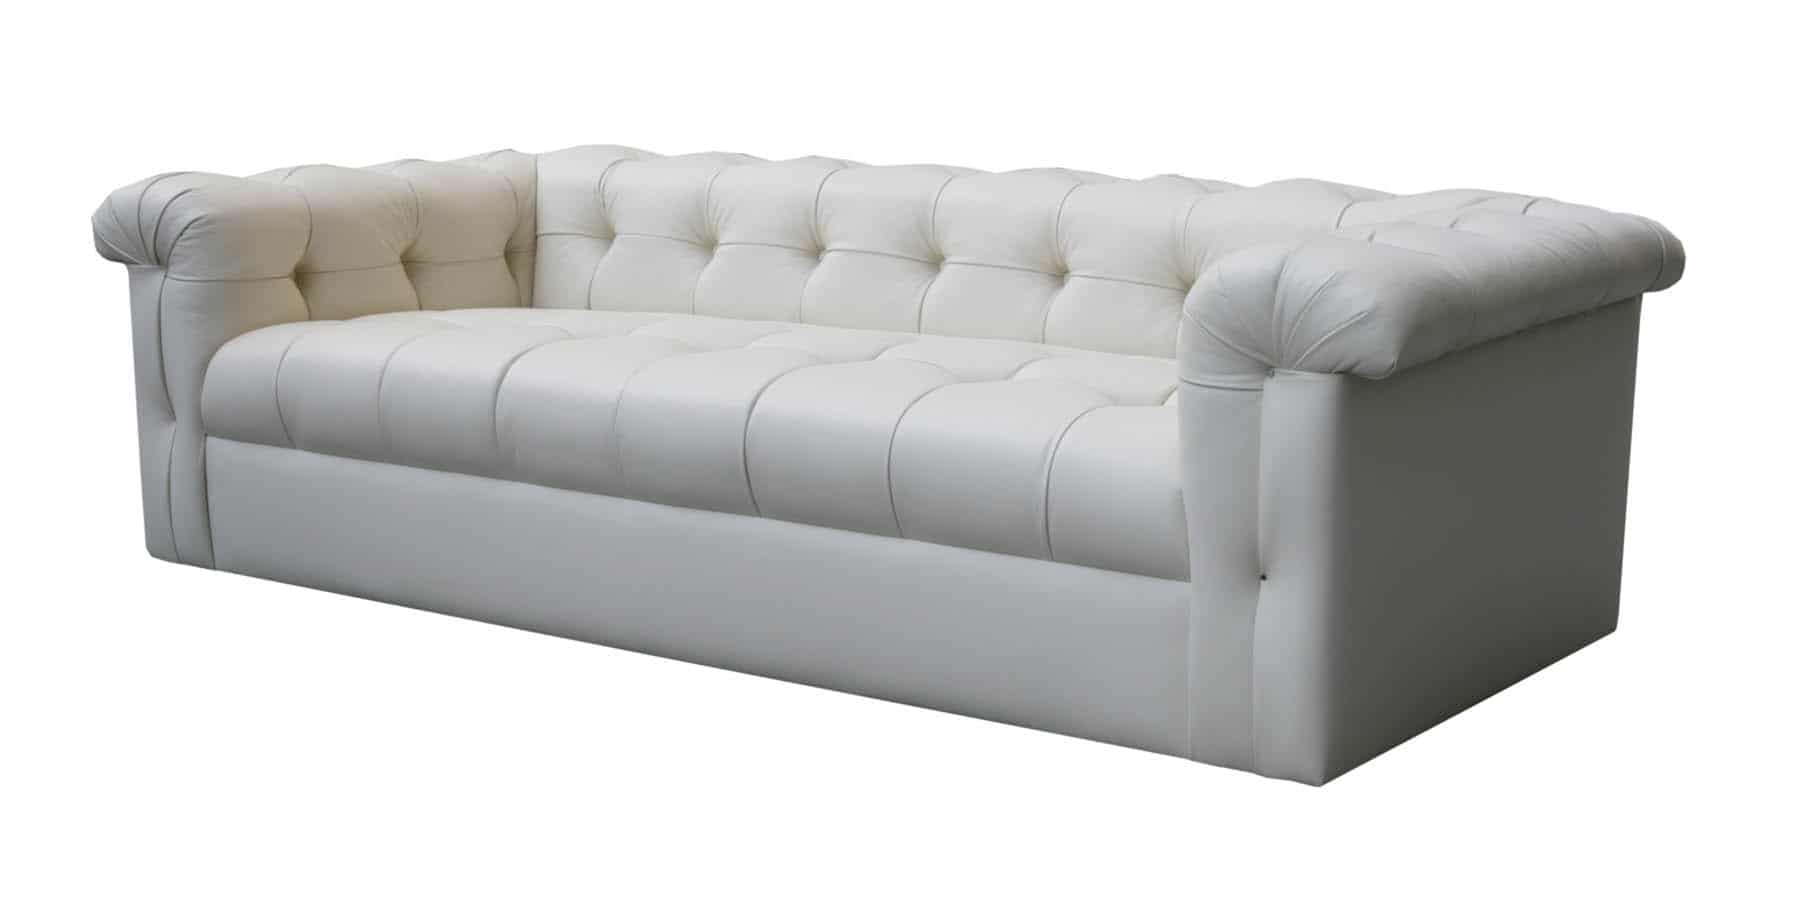 4 foot wide sofa bed shampoo cleaning hyderabad 19 awesome 6 photographs homes alternative 867